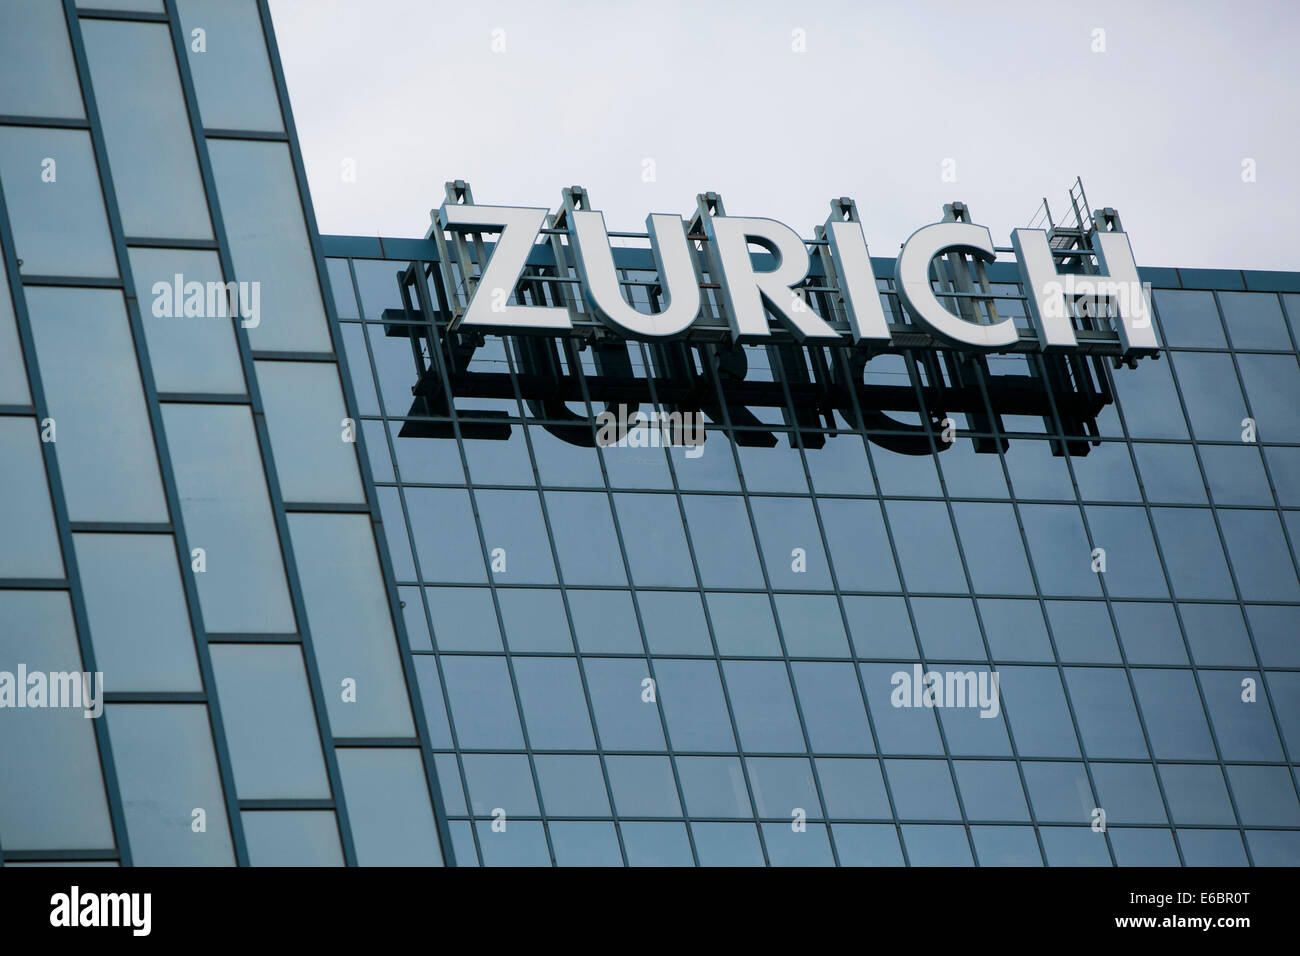 The headquarters of Zurich North America in Schaumburg, Illinois. Stock Photo